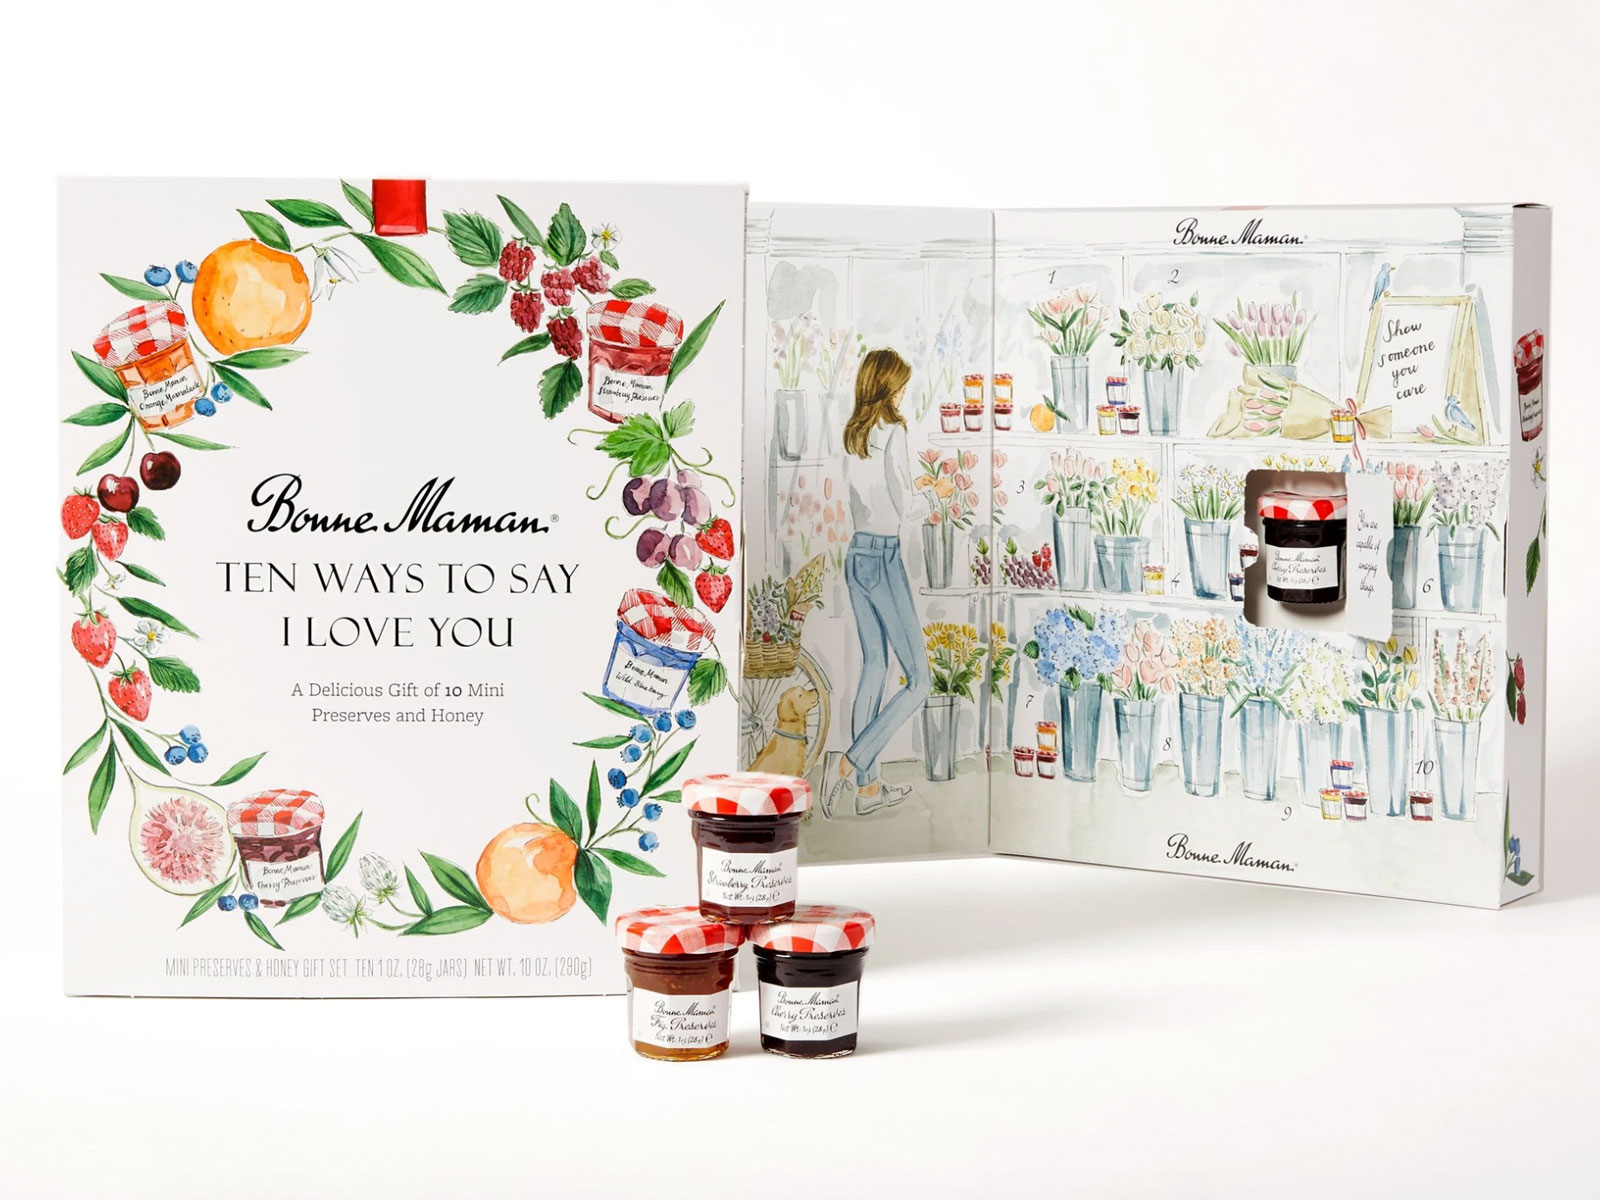 Bonne Maman Just Released a New Gift Box of Mini Jams, Just in Time for Valentine's Day